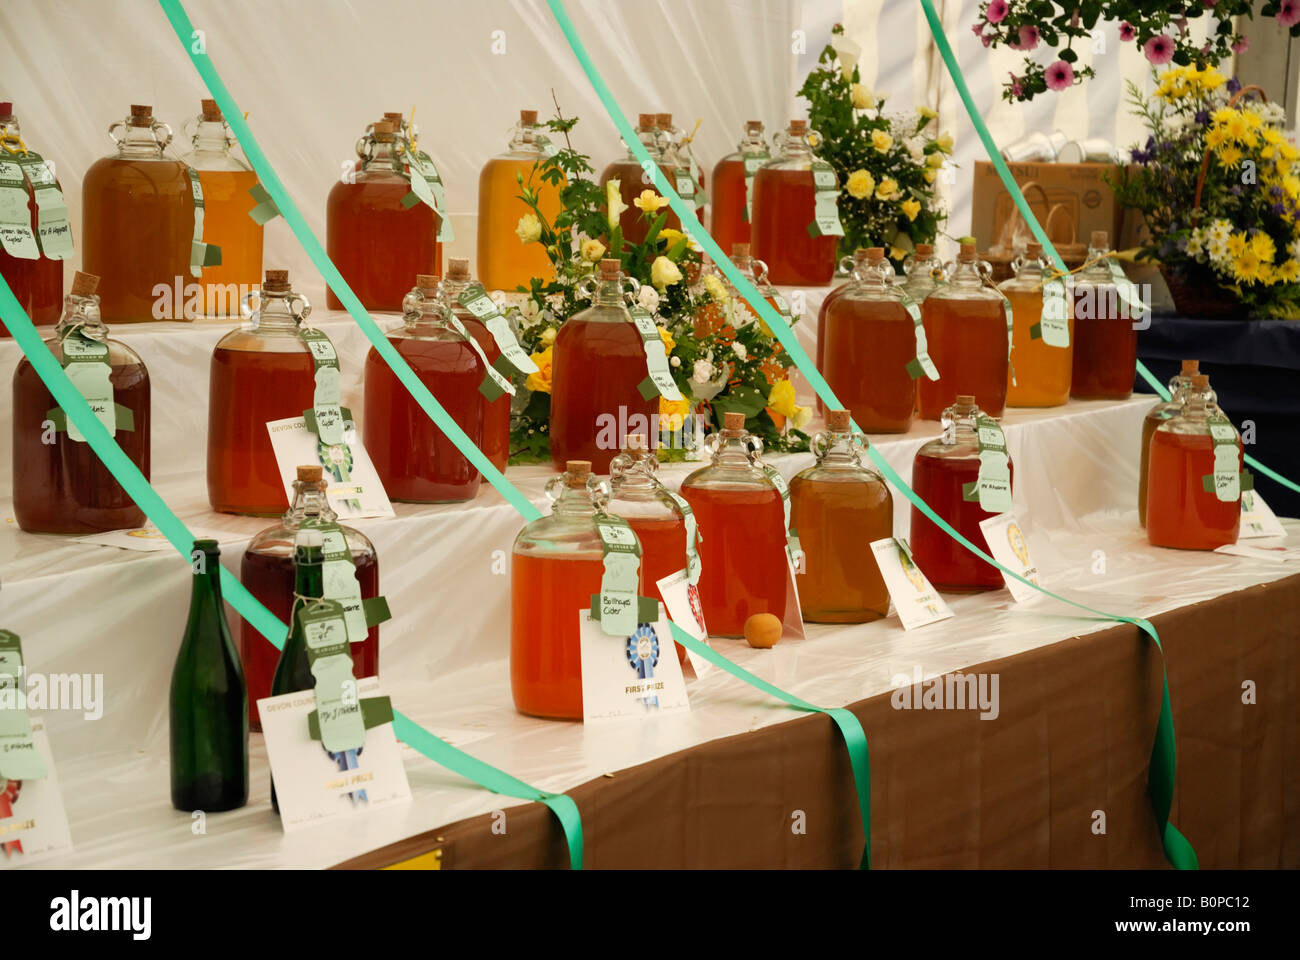 Local cider on display at the Devon County Show, Exeter, UK - Stock Image